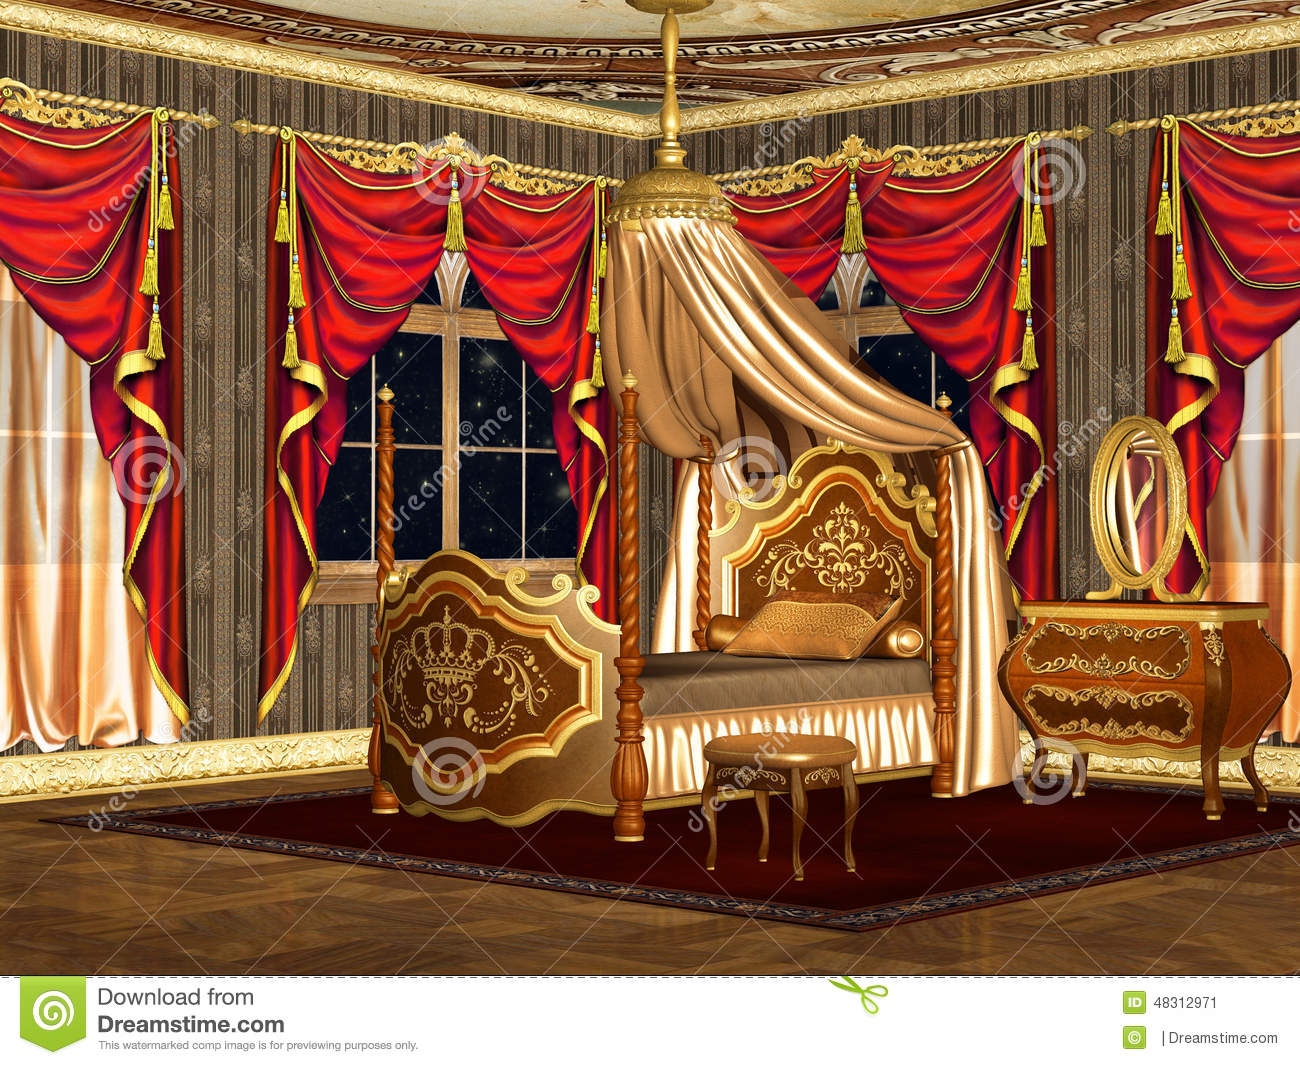 Awesome images de chambre a coucher royal gallery for Chambre a coucher royale